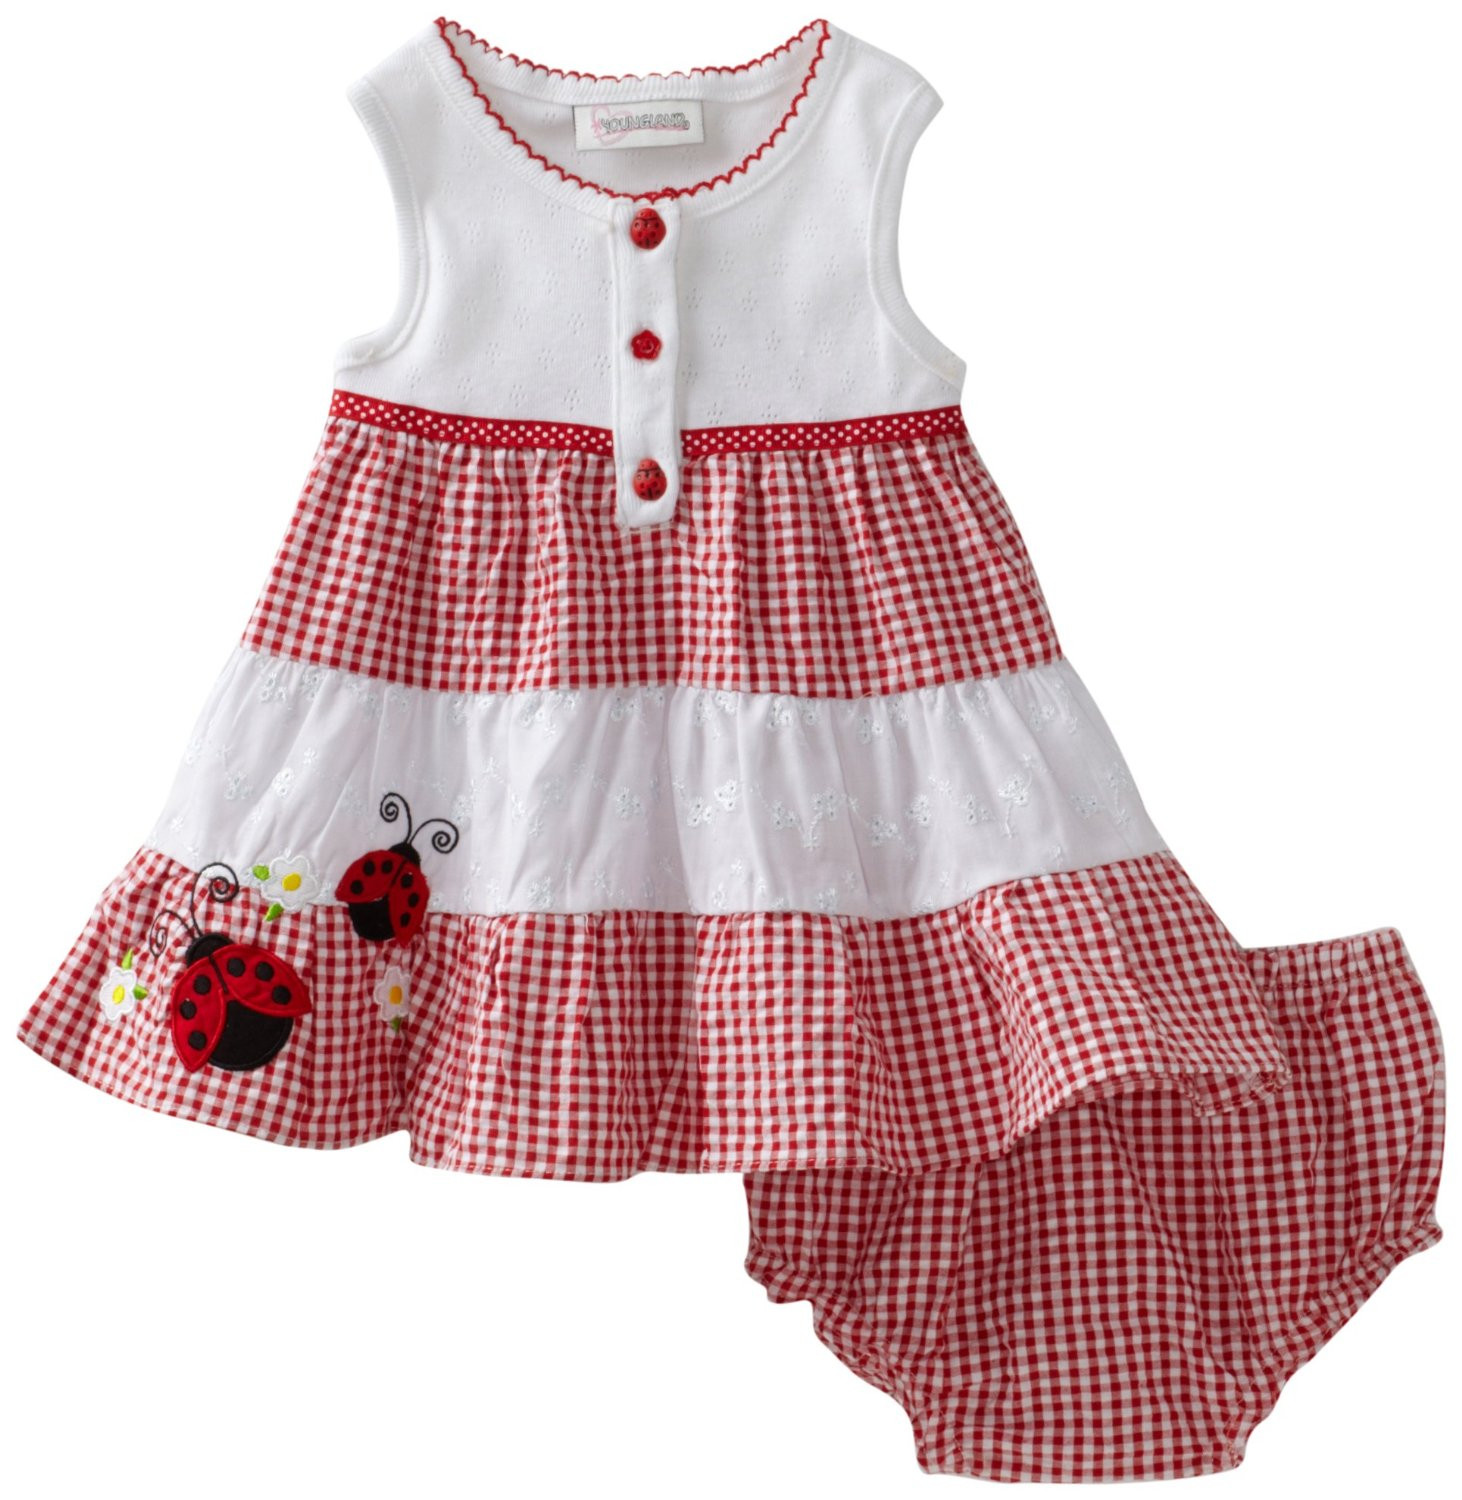 Baby Girl Dresses New Fashion & Make Up Clothes for Babies Of Great 42 Pics Baby Girl Dresses